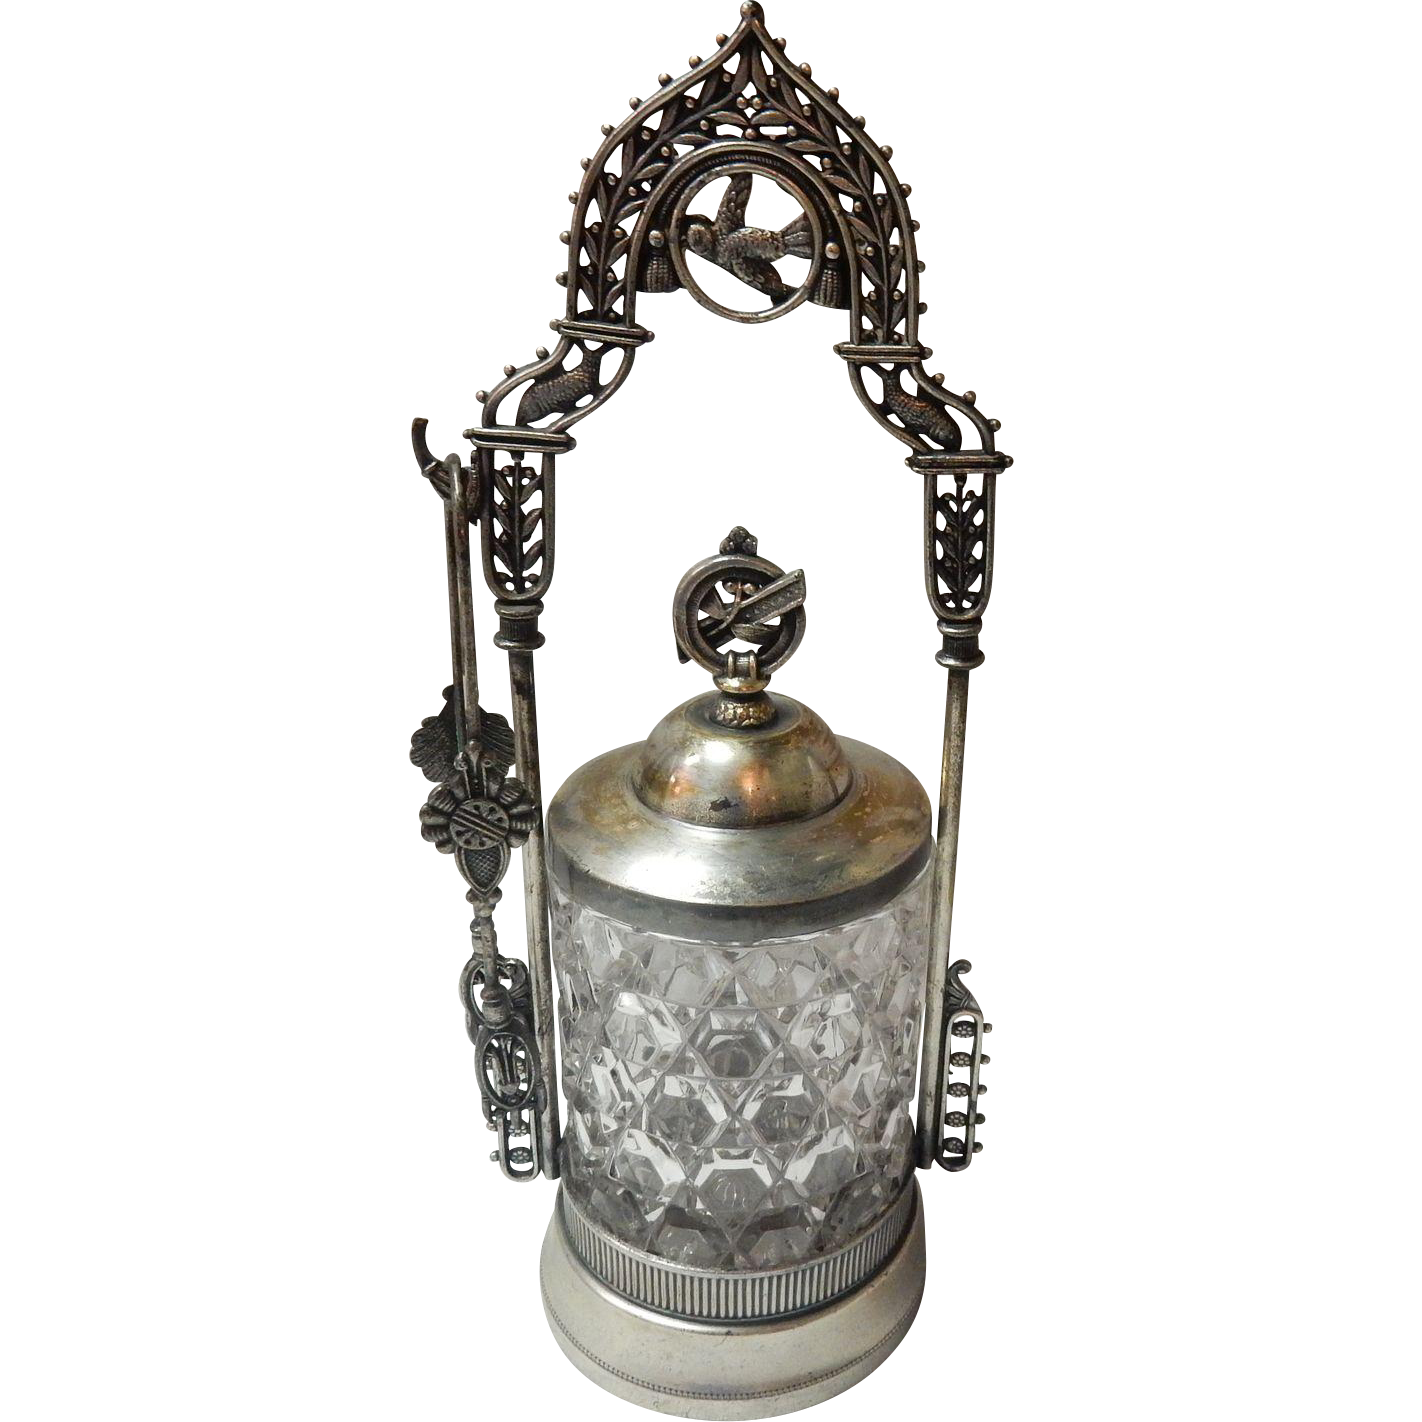 Antique Ornate Pickle Castor By Barbour Bros. Silver Co.